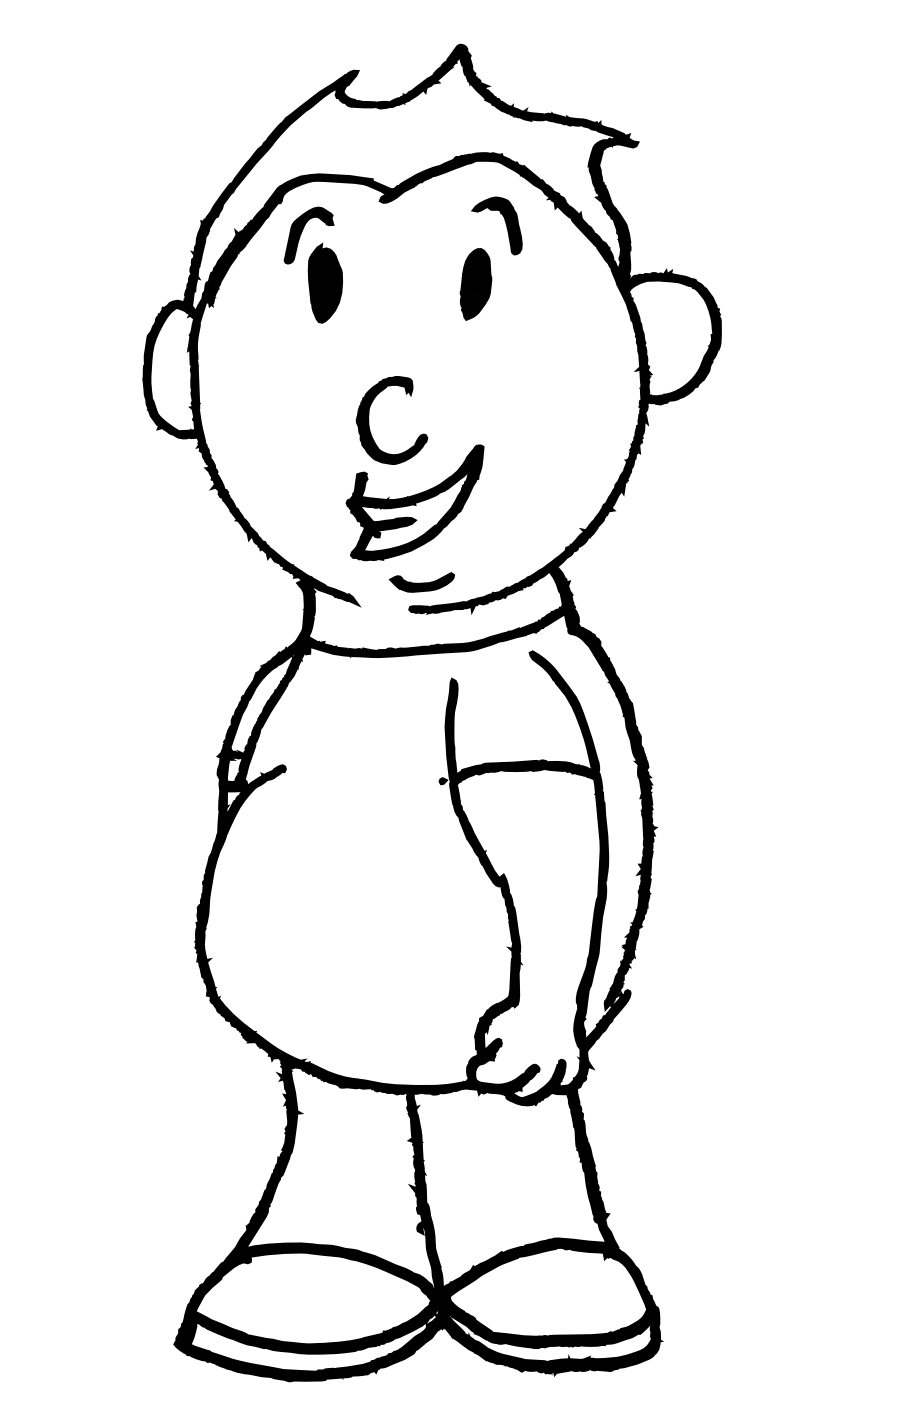 cartoon character drawings character drawing ideas free download on clipartmag drawings cartoon character